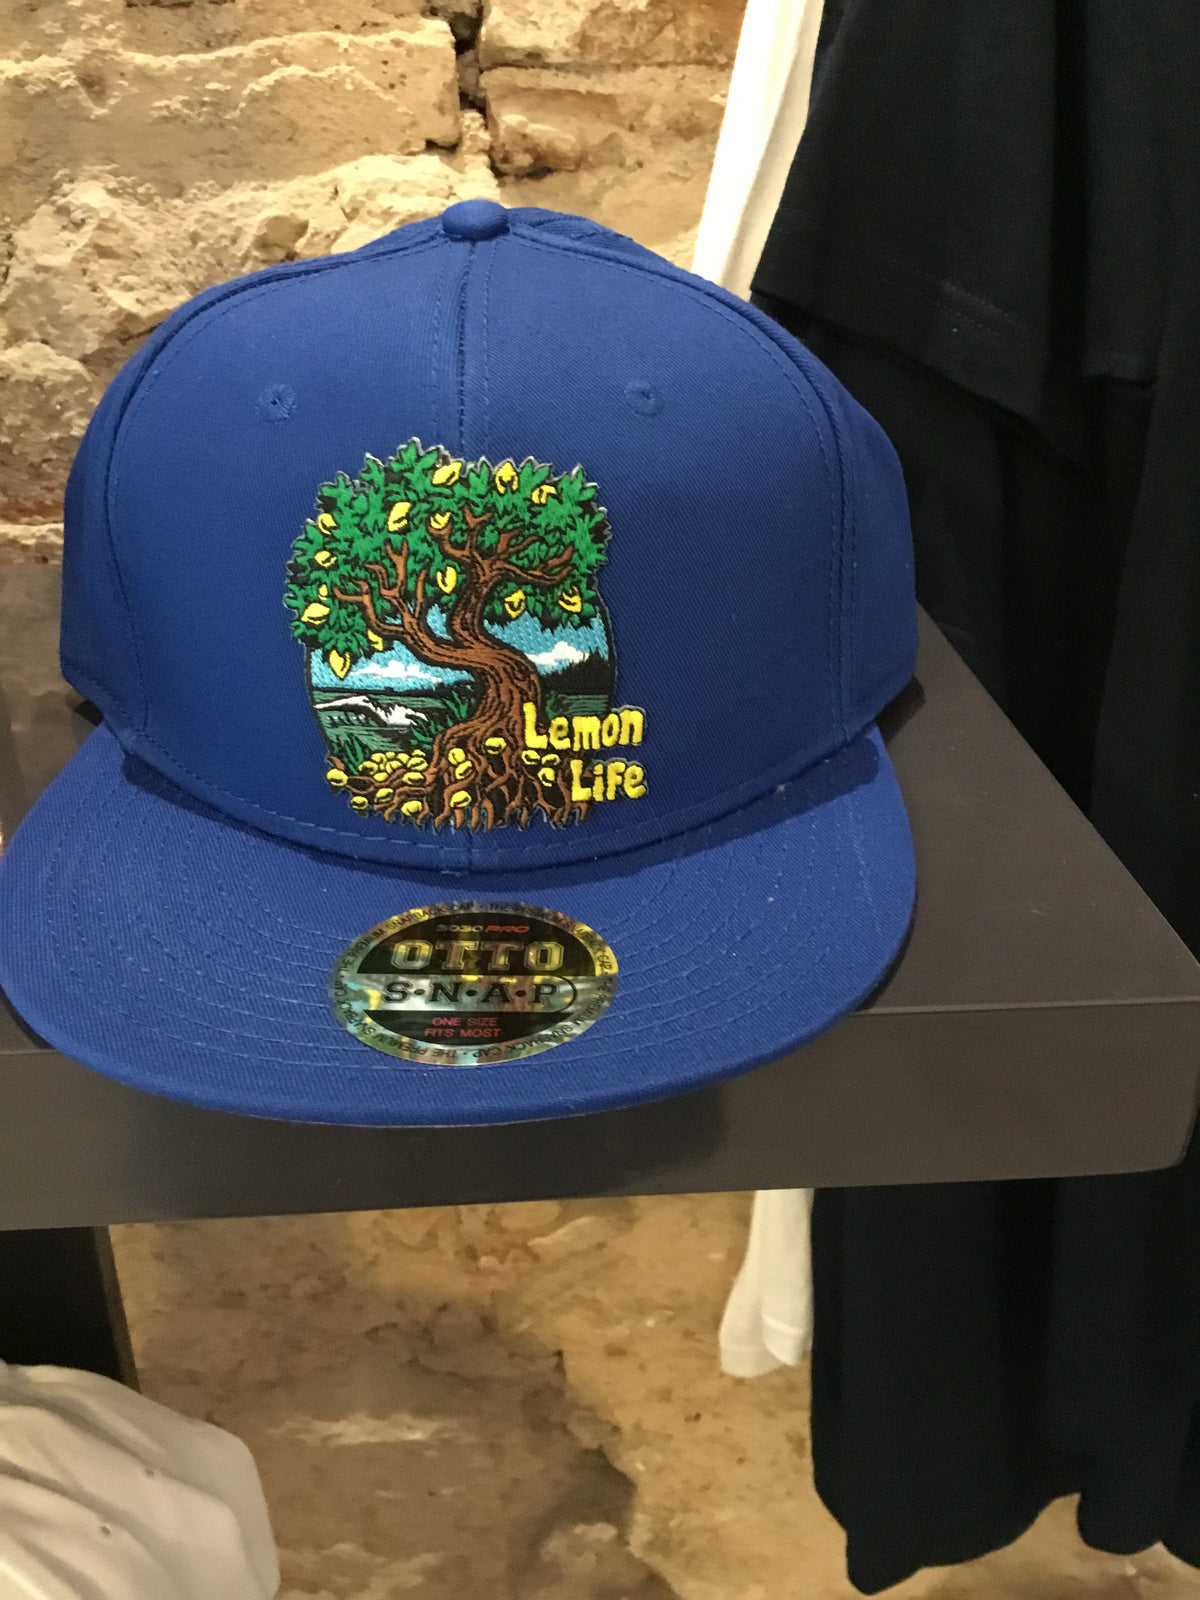 Lemon Tree Snap Backs